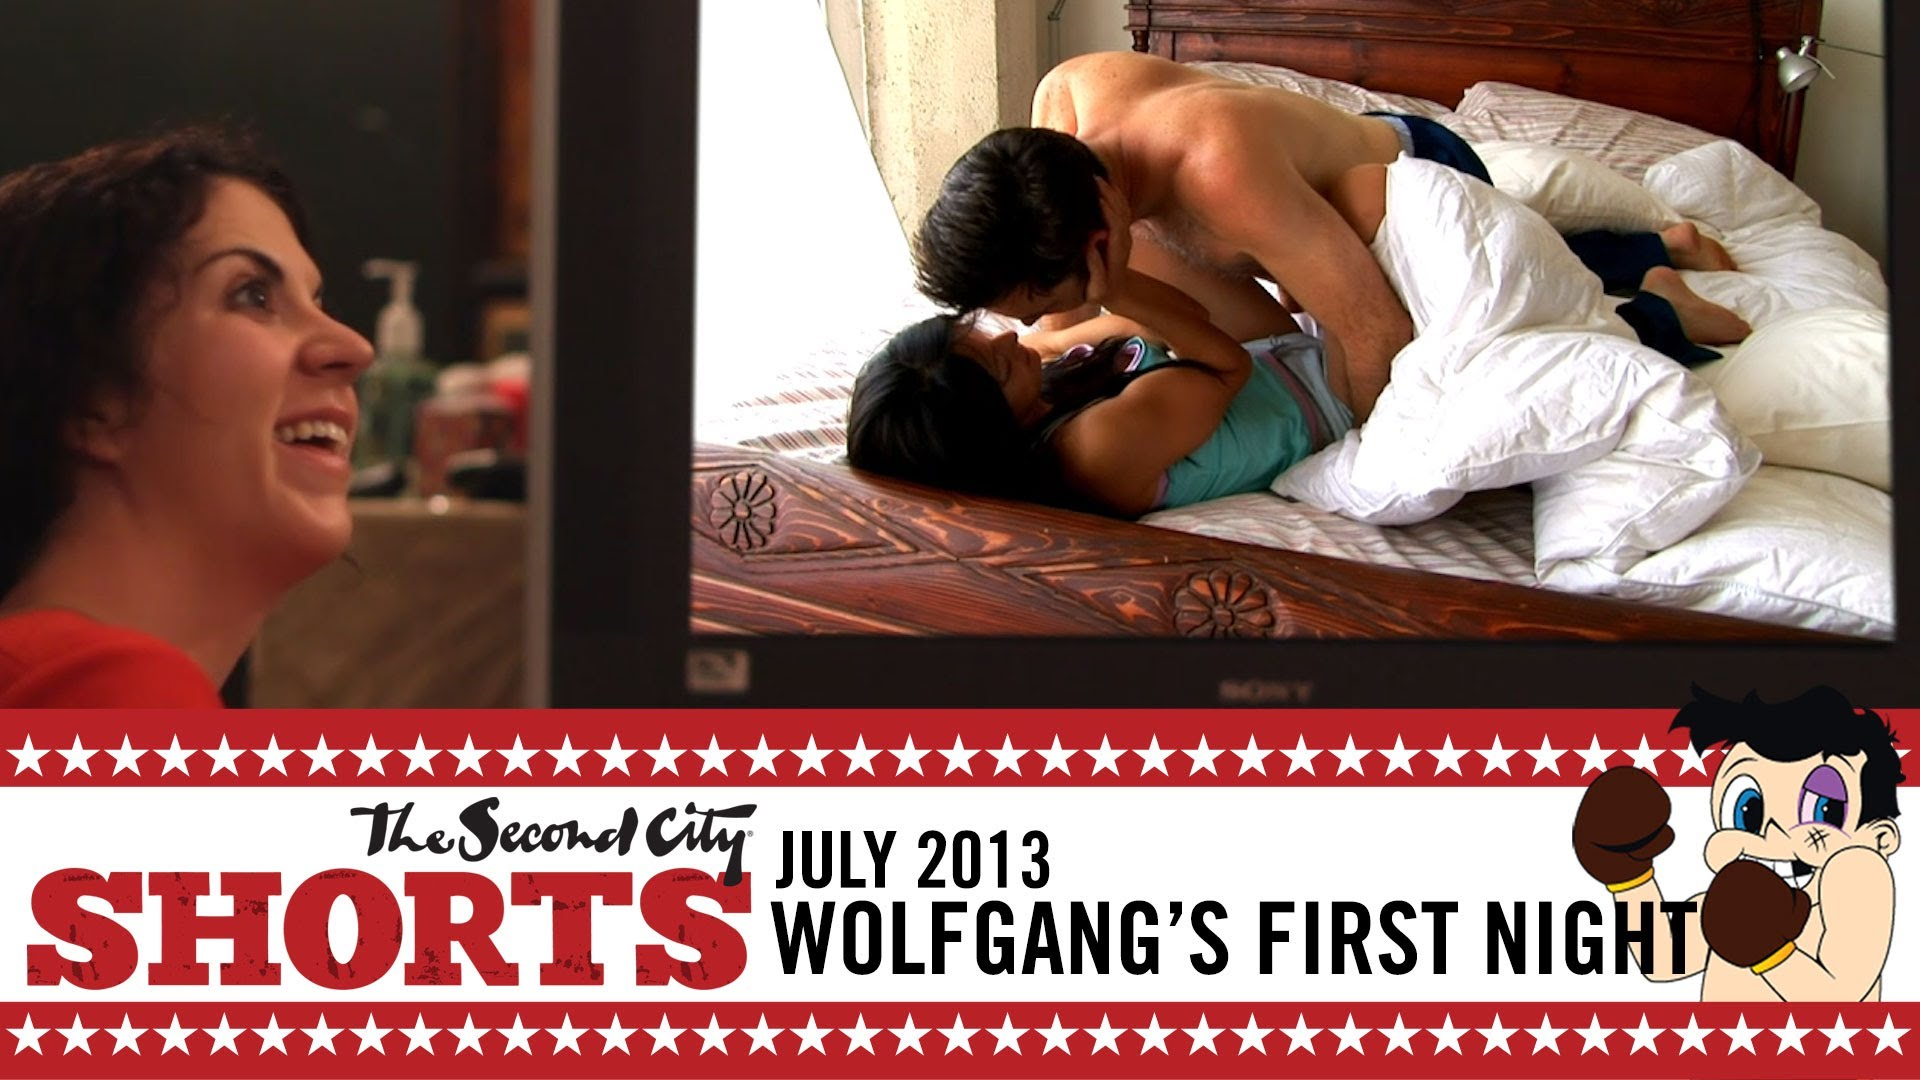 Wolfgang's First Night – Second City Shorts Winner 7/13